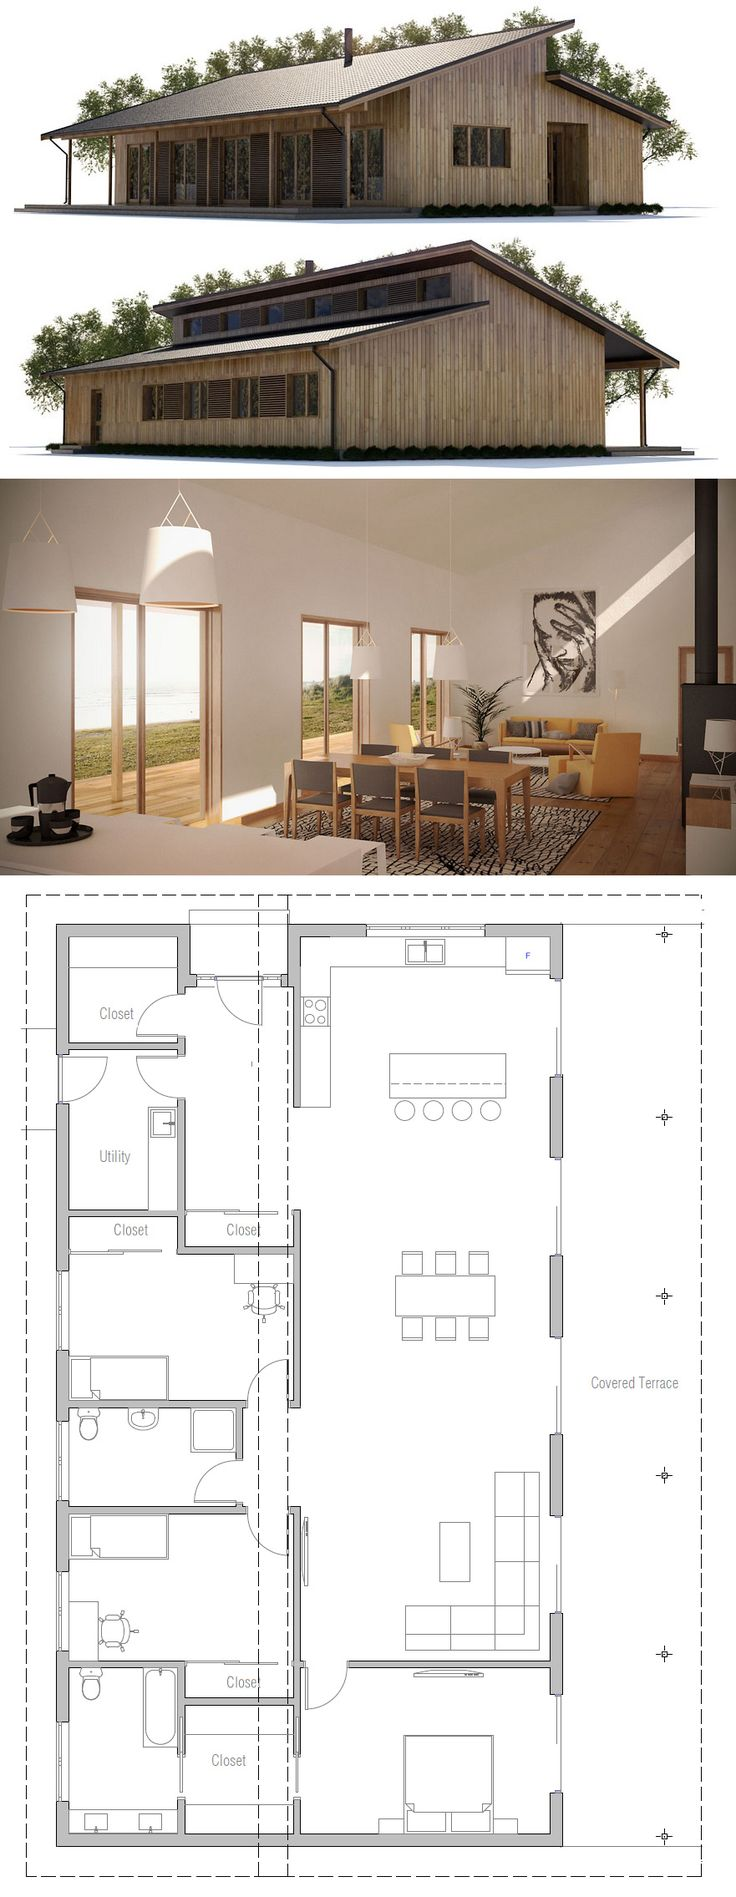 Master bedroom drawing - 17 Best Ideas About Master Bedroom Plans On Pinterest Master Bedroom Layout Master Suite Layout And Bathroom Plans